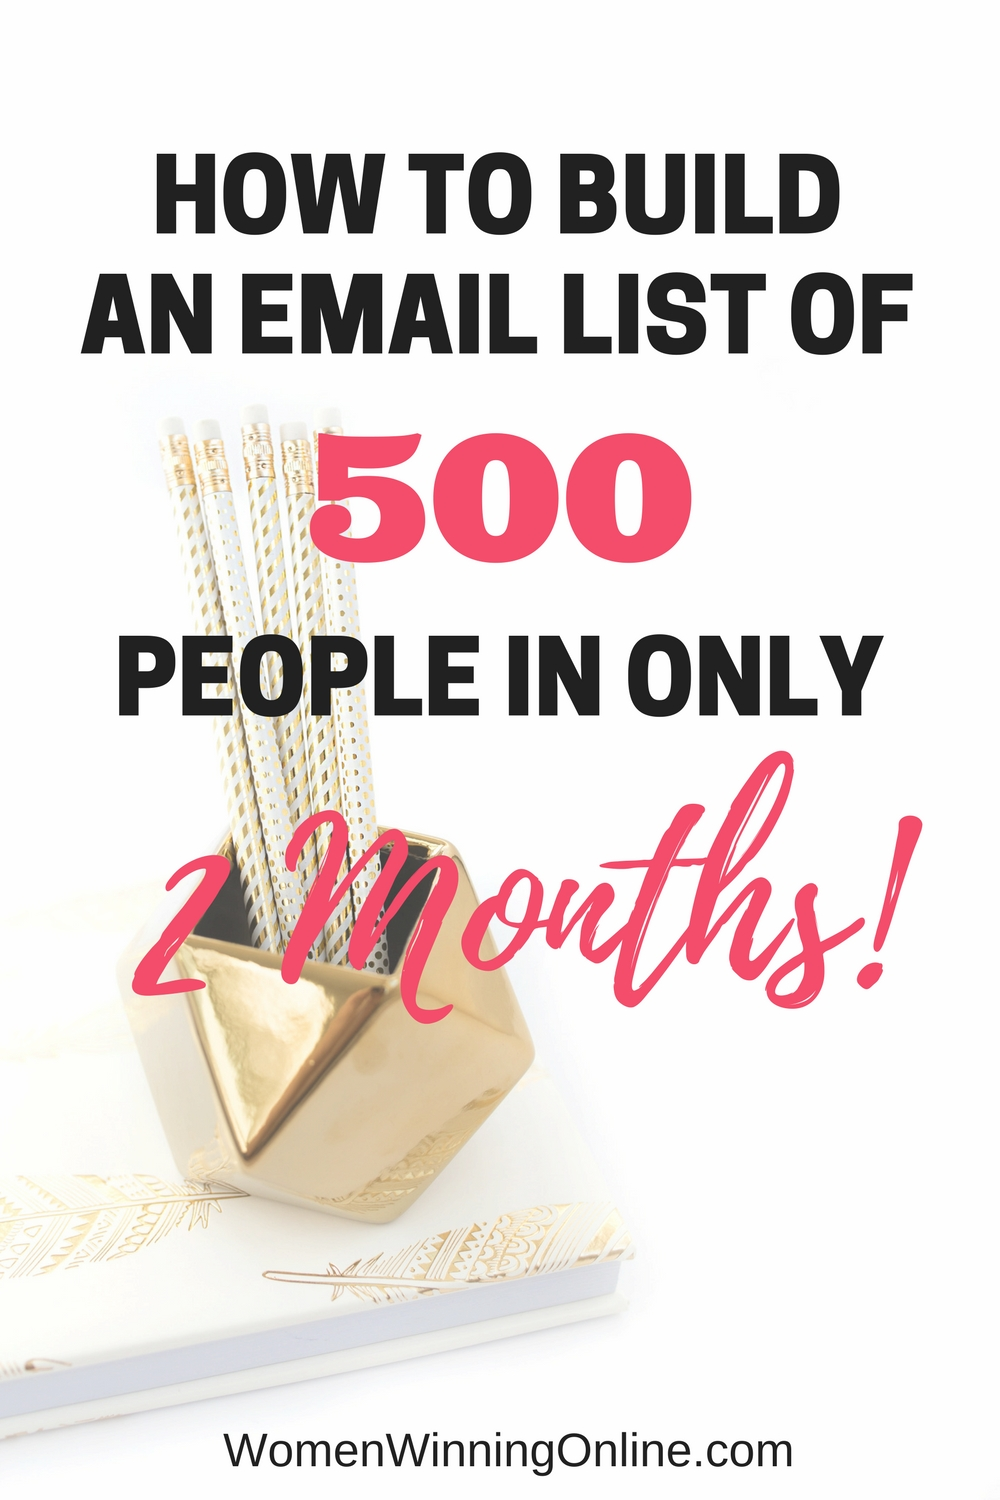 https://womenwinningonline.com/how-to-build-an-email-list-of-500-people-in-only-2-months/